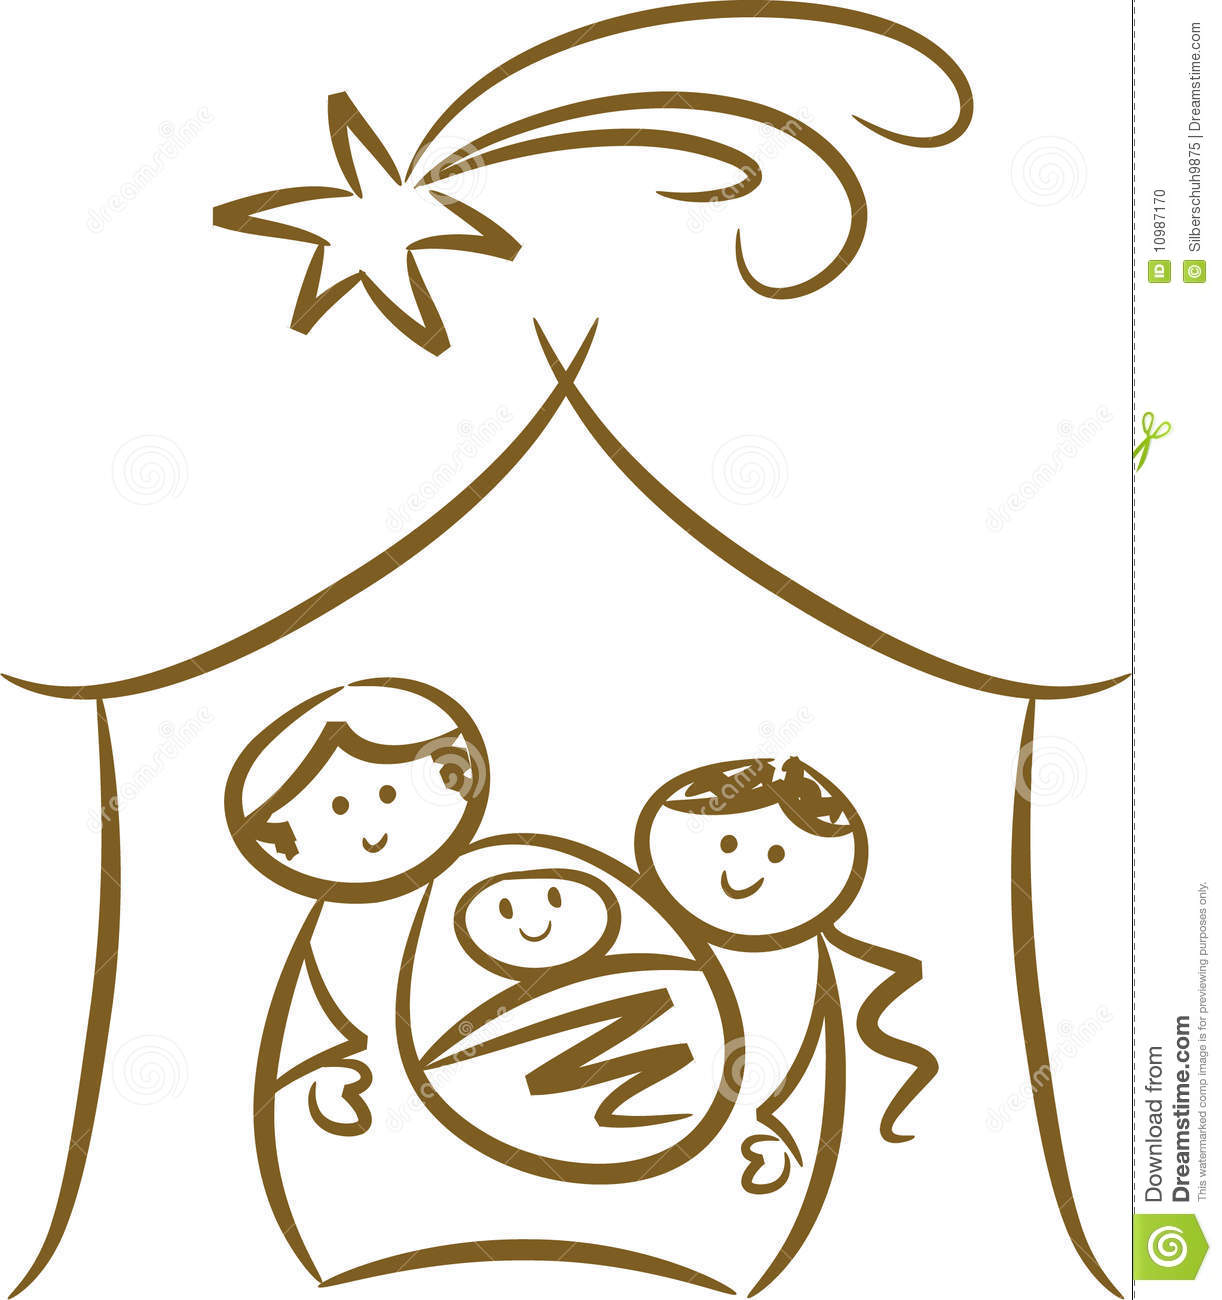 Simple line-art drawing of Nativity scene showing Joseph, Mary, baby ...